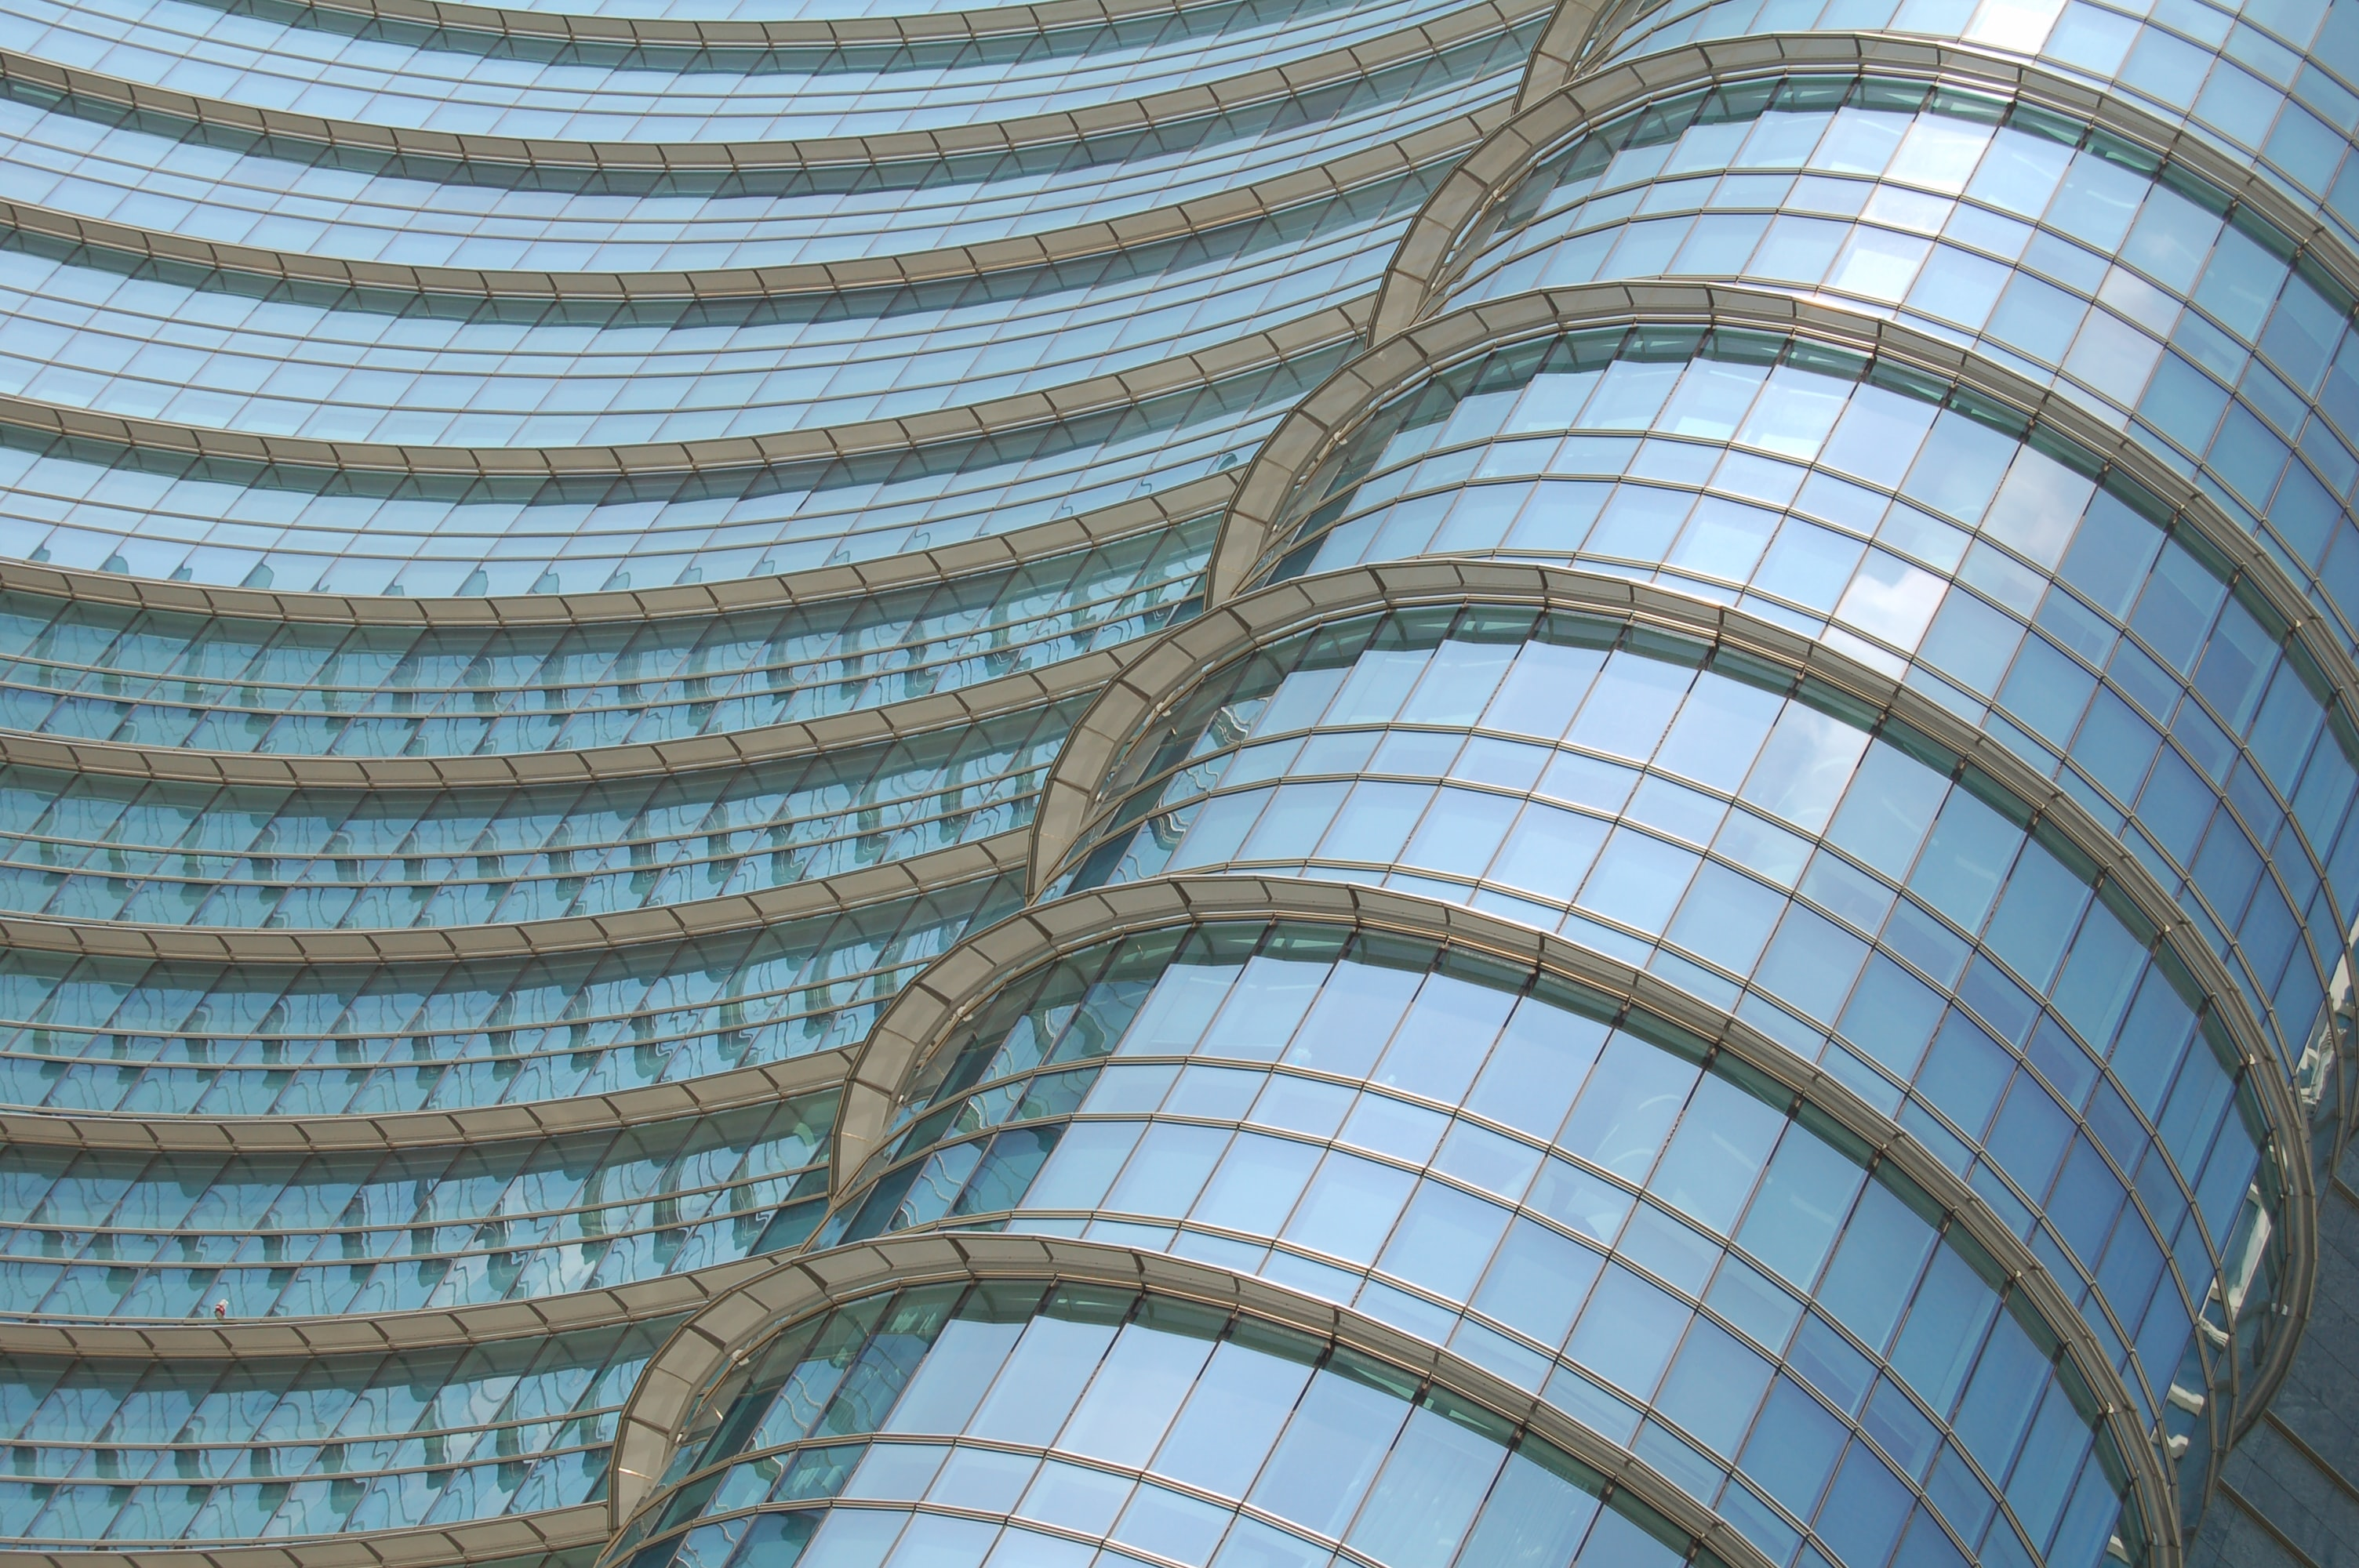 Curved glass facade of a modern building